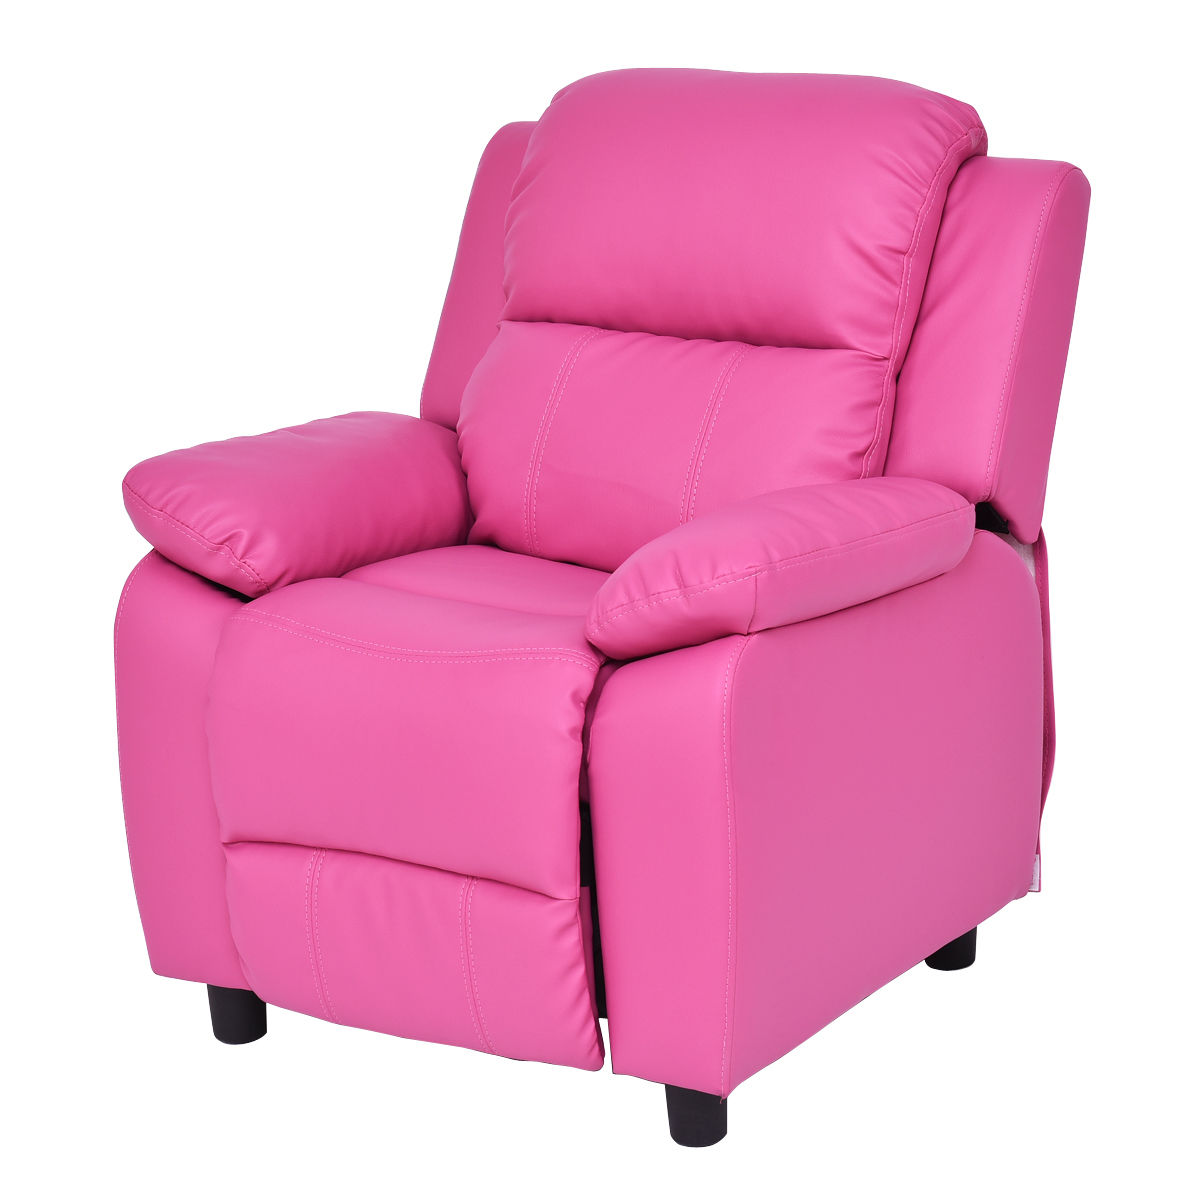 Costway Kids Recliner Sofa Armrest Chair Couch Lounge Children Living Room Furniture rose red  sc 1 st  Walmart & Kidsu0027 Recliners islam-shia.org